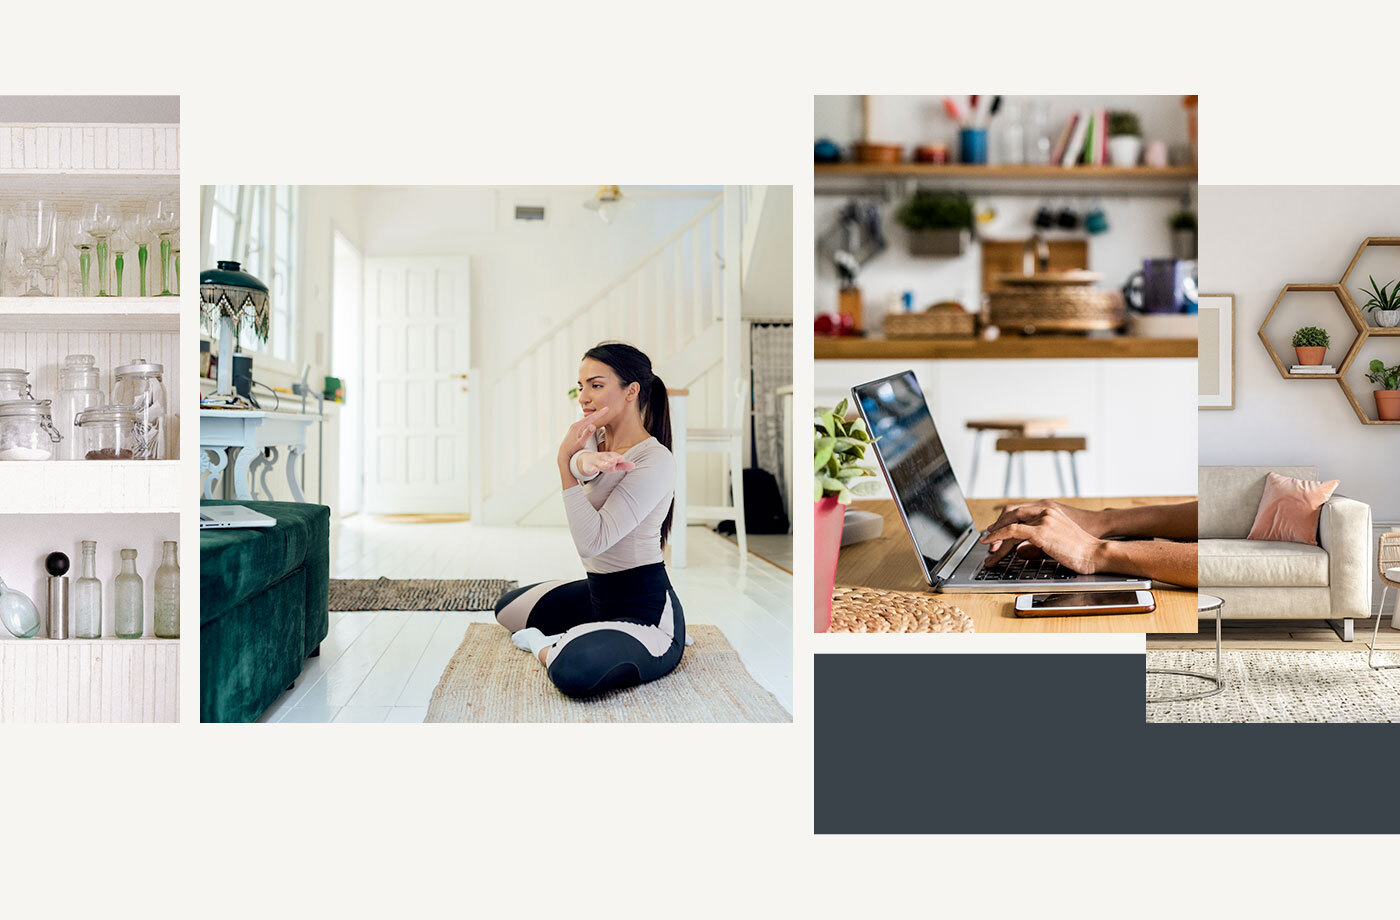 Thumbnail for COVID-19 Has Changed Every Aspect of Our Lives—Including Our Homes